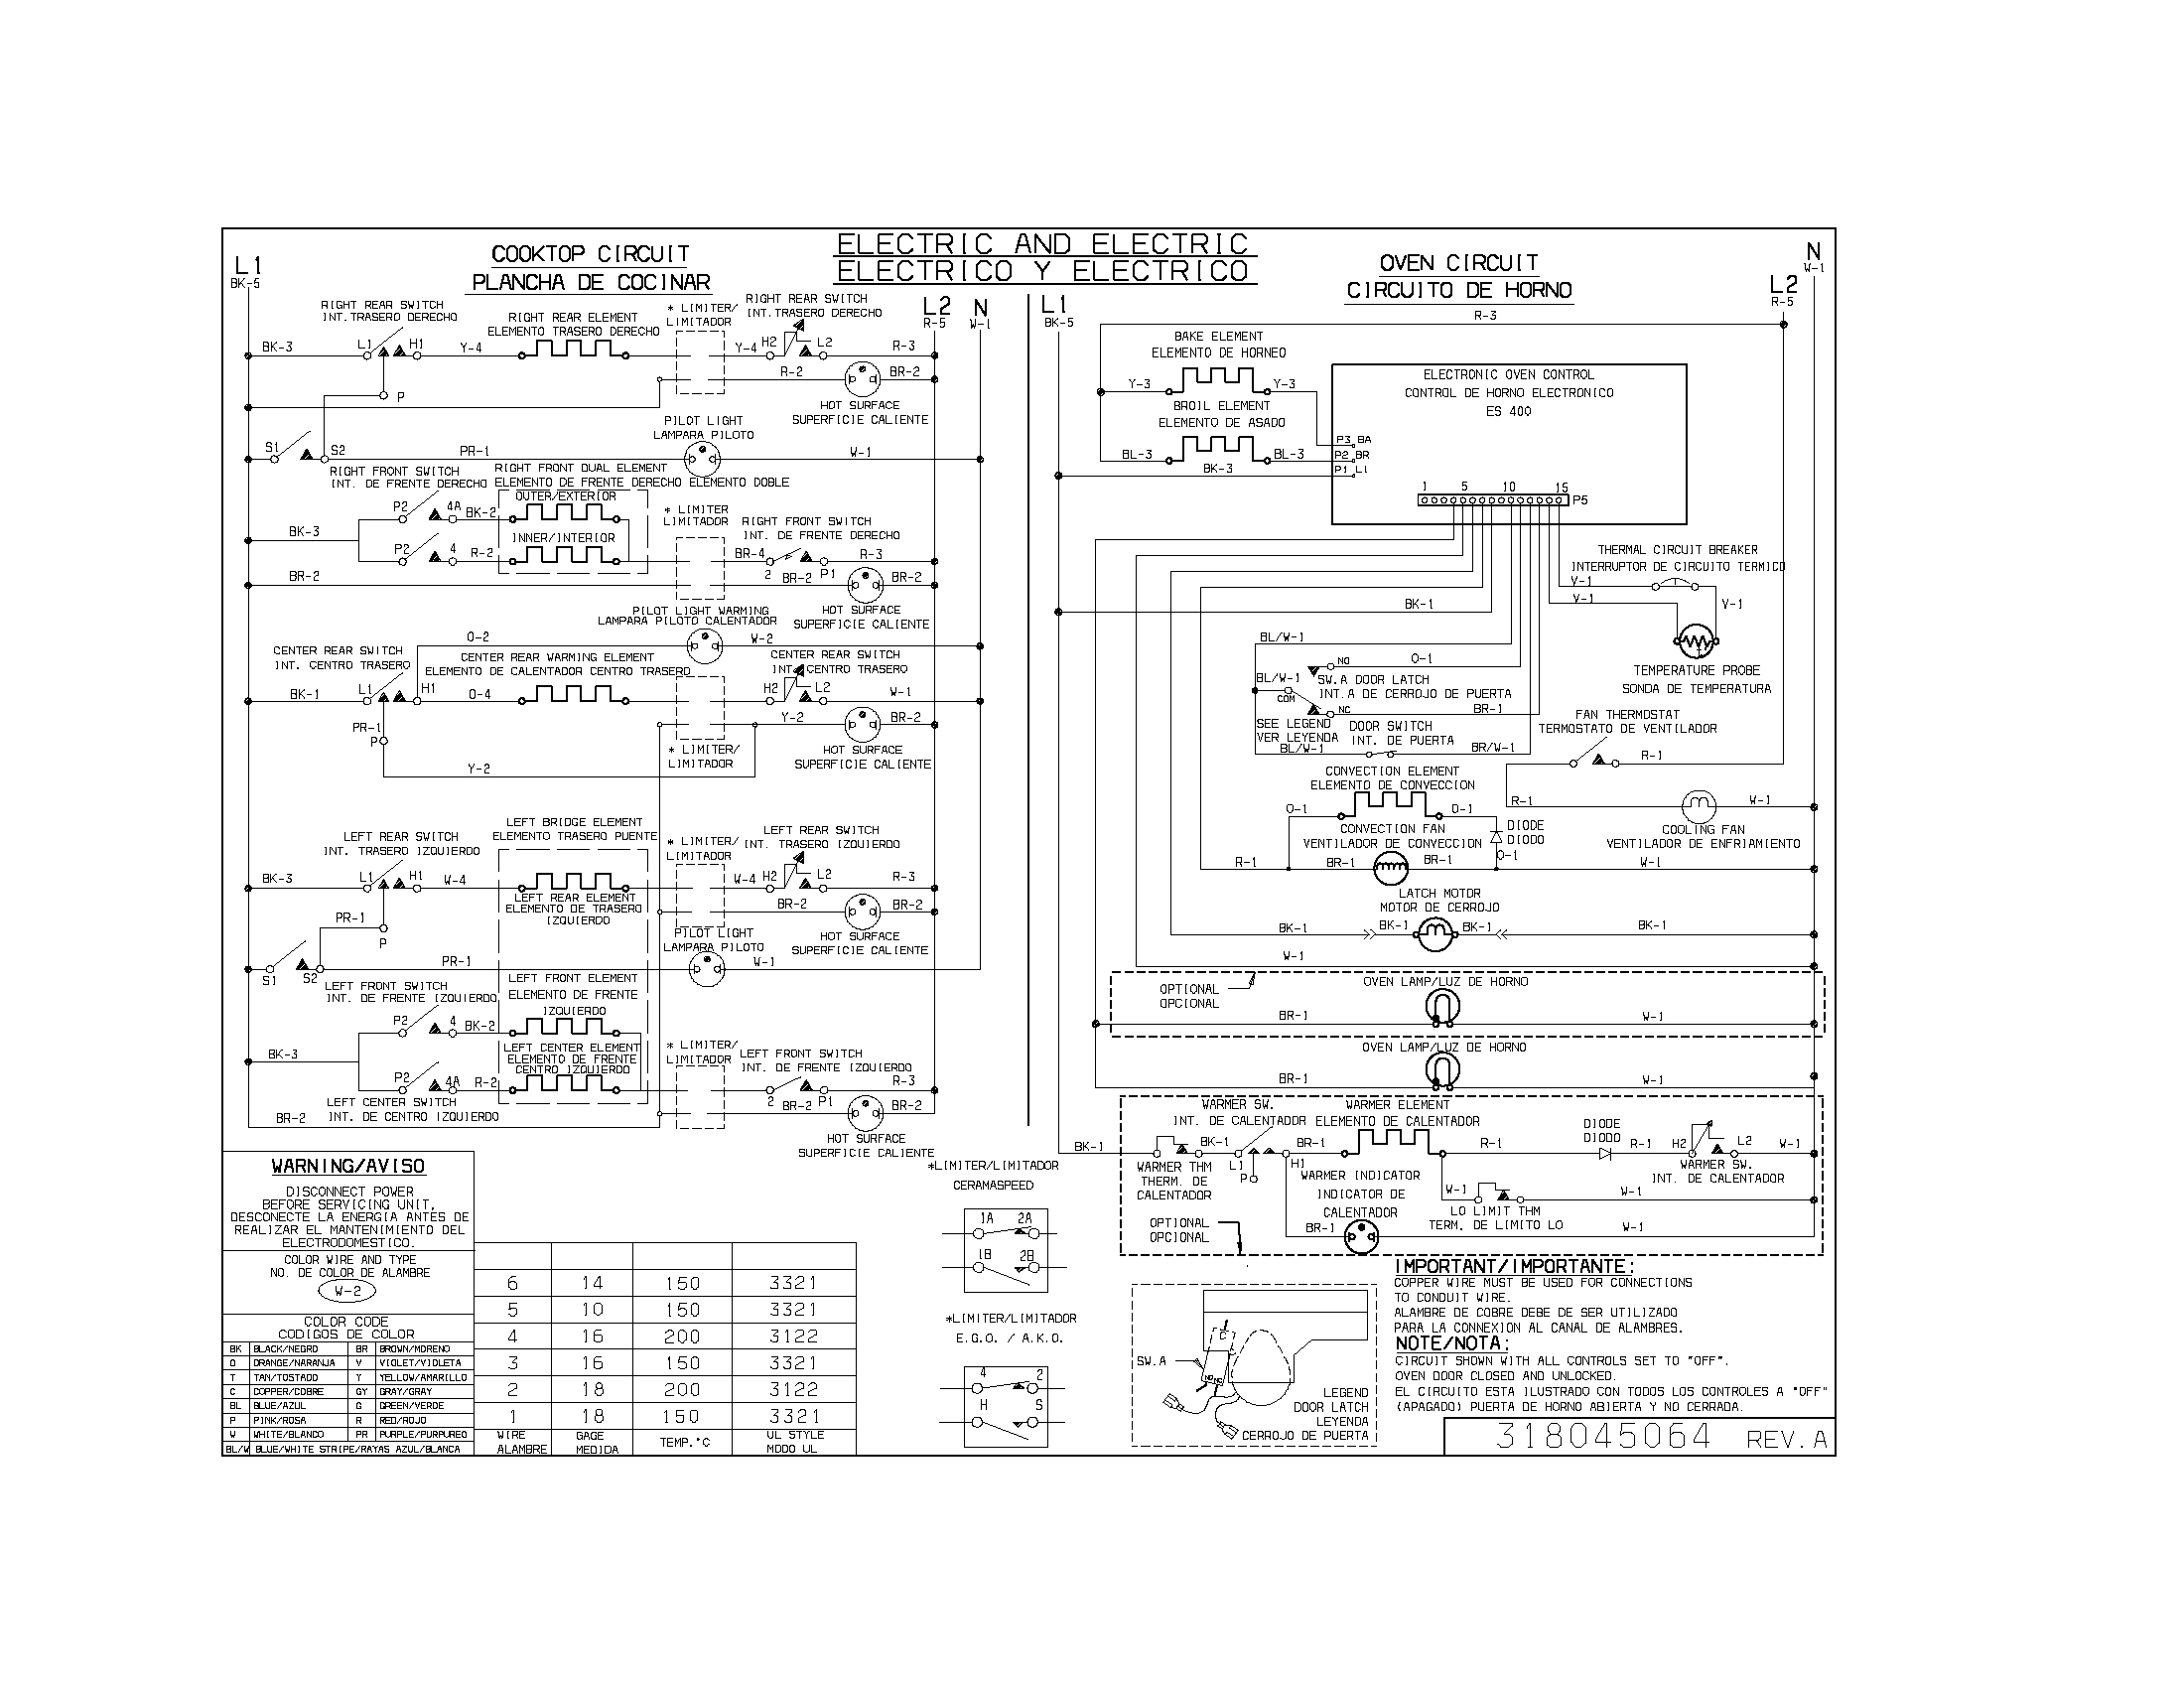 kenmore model 116 wiring diagram kenmore 90 series dryer parts diagram | automotive parts ...